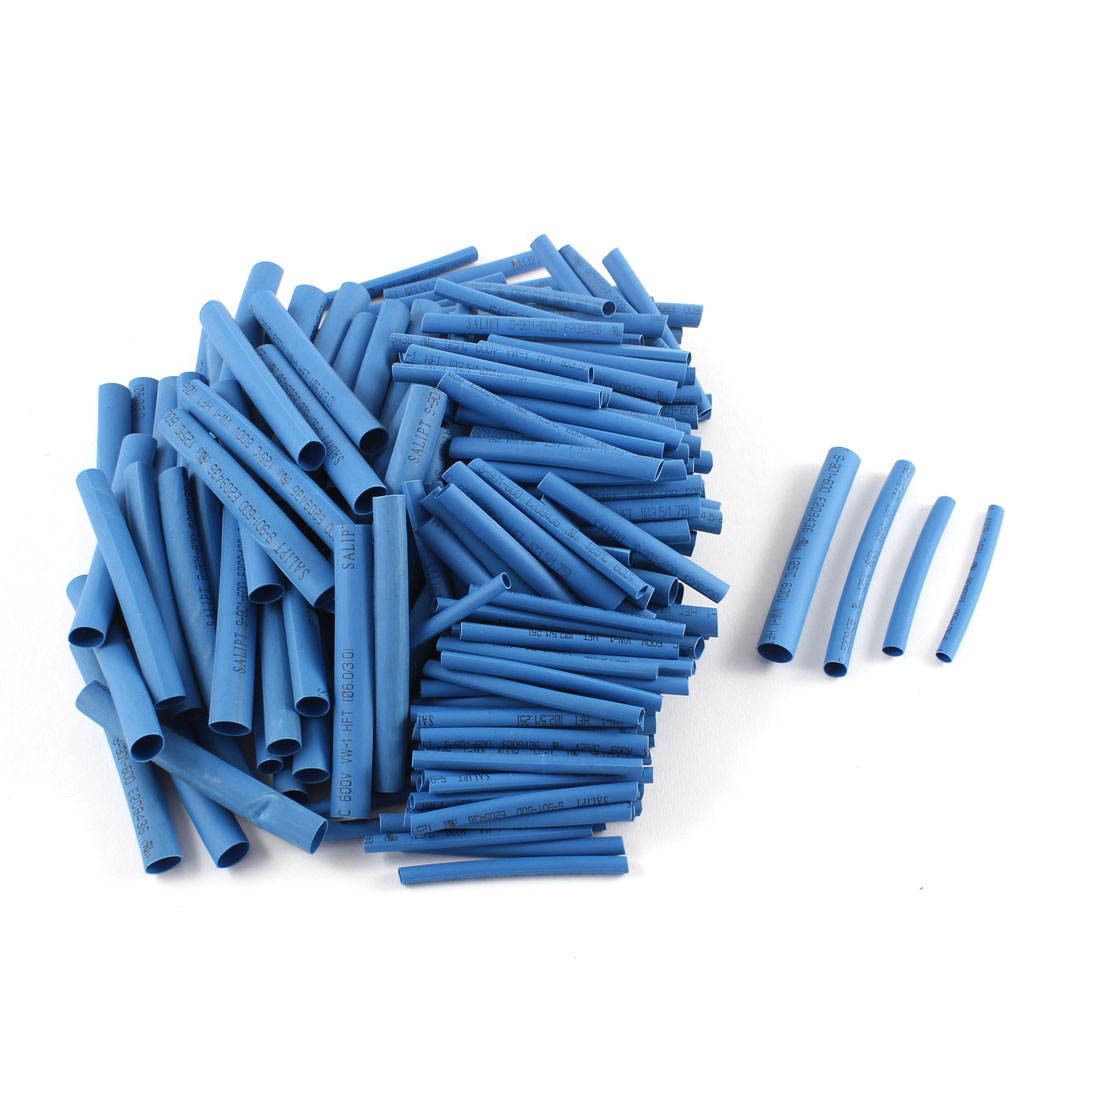 200 Pcs 4 Sizes Polyolefin Heat Shrink Tubing Cable Sleeve Blue